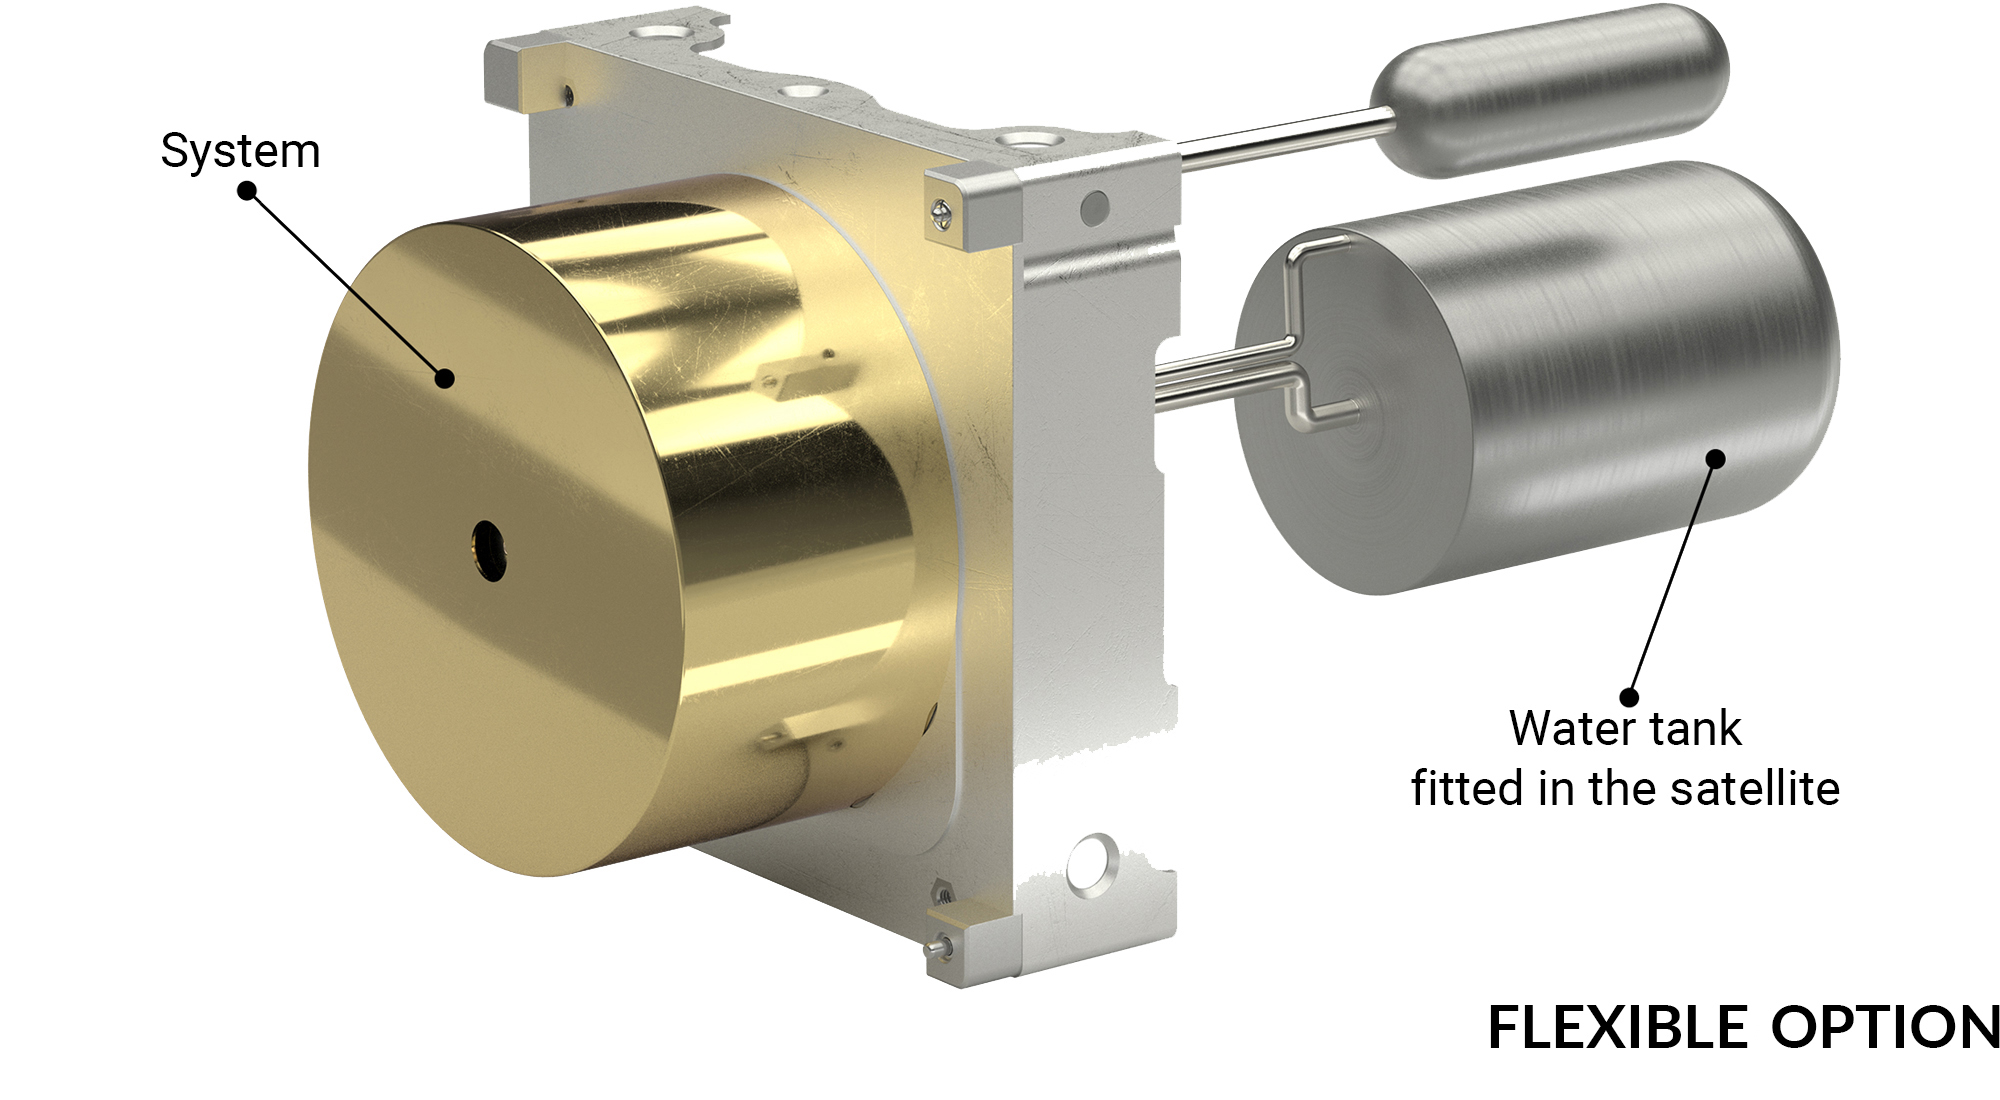 SteamJet Space Systems – Water fueled thruster for satellite orbit